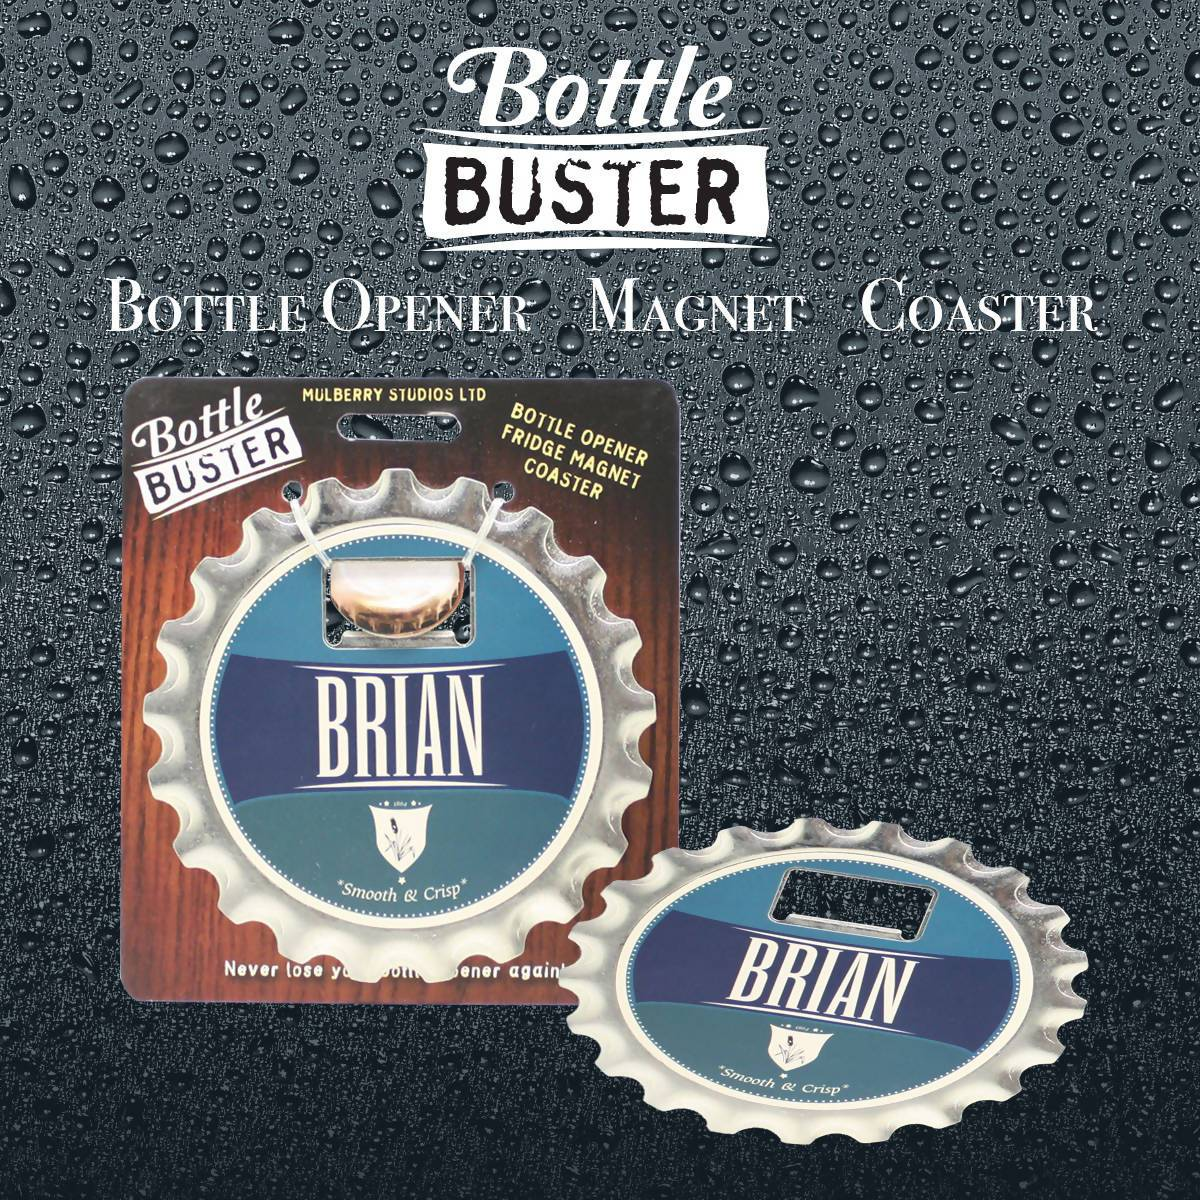 BOTTLE BUSTER - Best Bottle Opener : Brian - Bottle Openers - La Belle Collection - Naiise